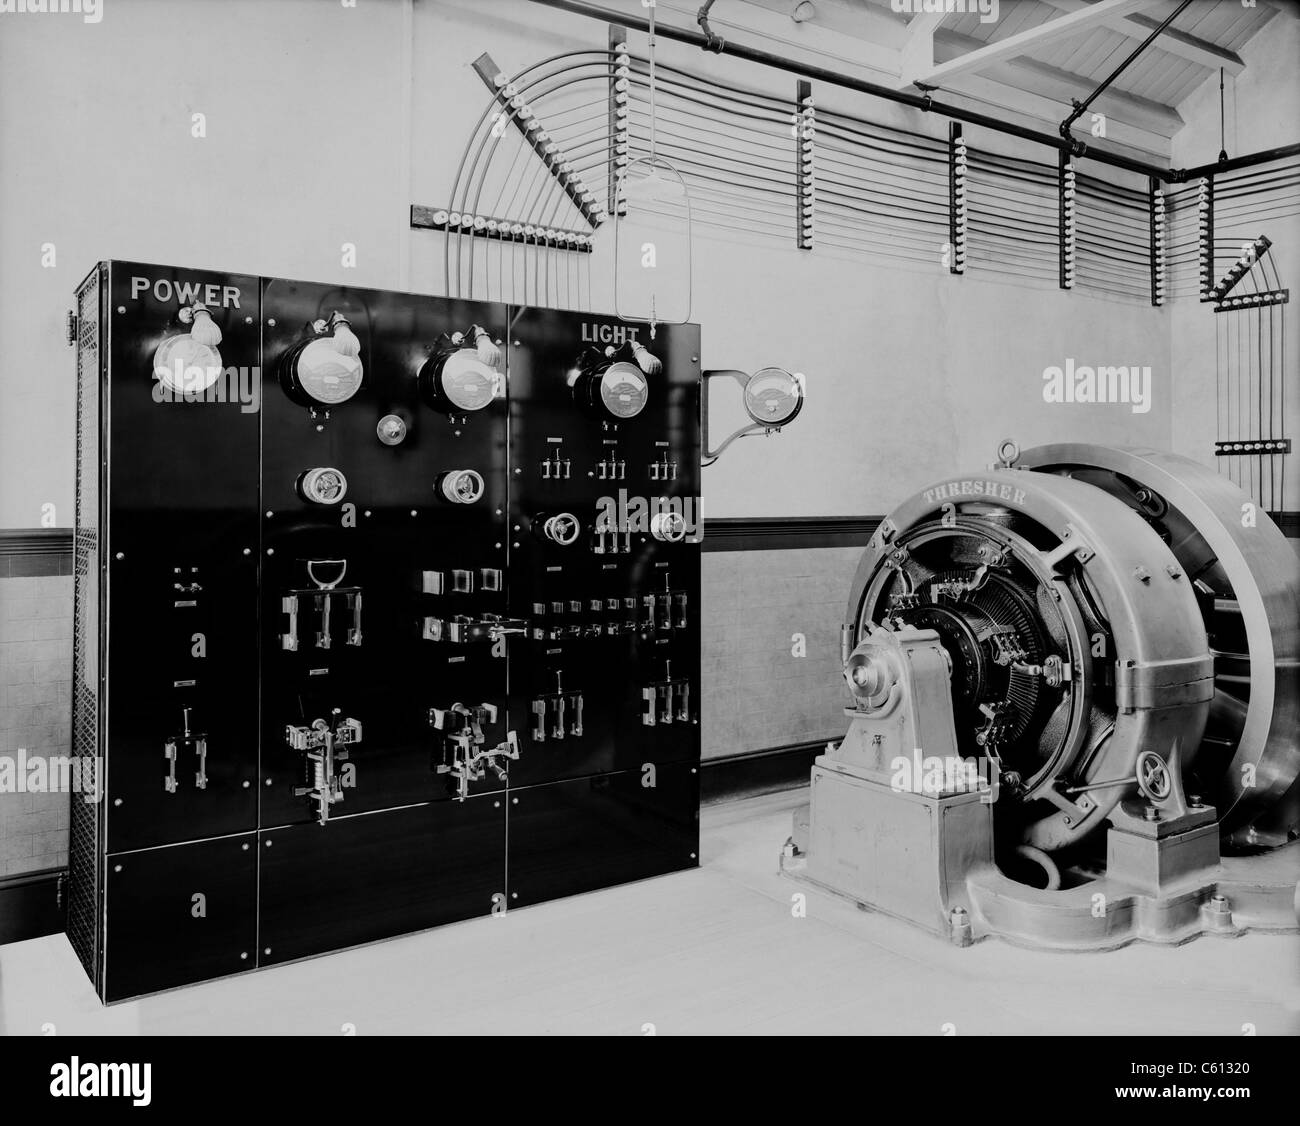 Control panel and dynamo (generator) of a self-contained electric ...